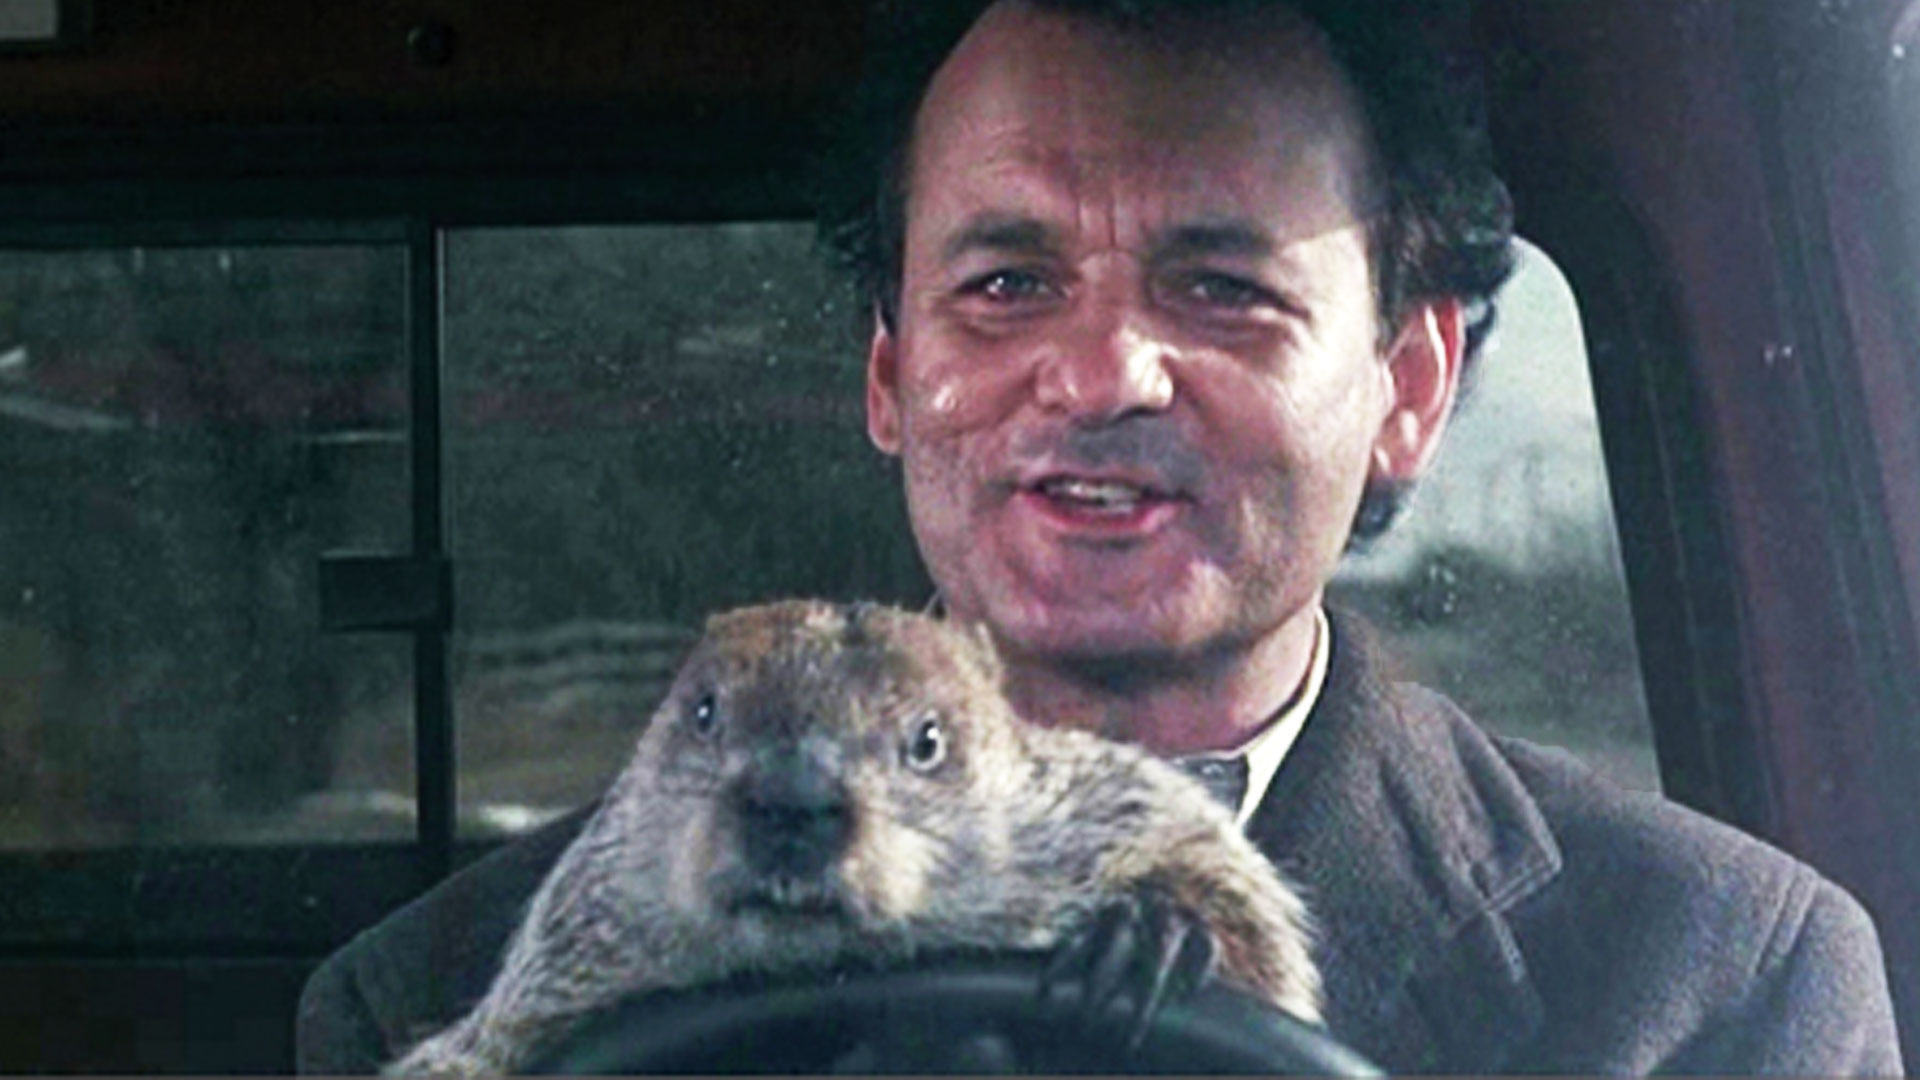 http://www.thecinemen.com/wp-content/uploads/2015/09/customerservice-groundhog-day.jpg